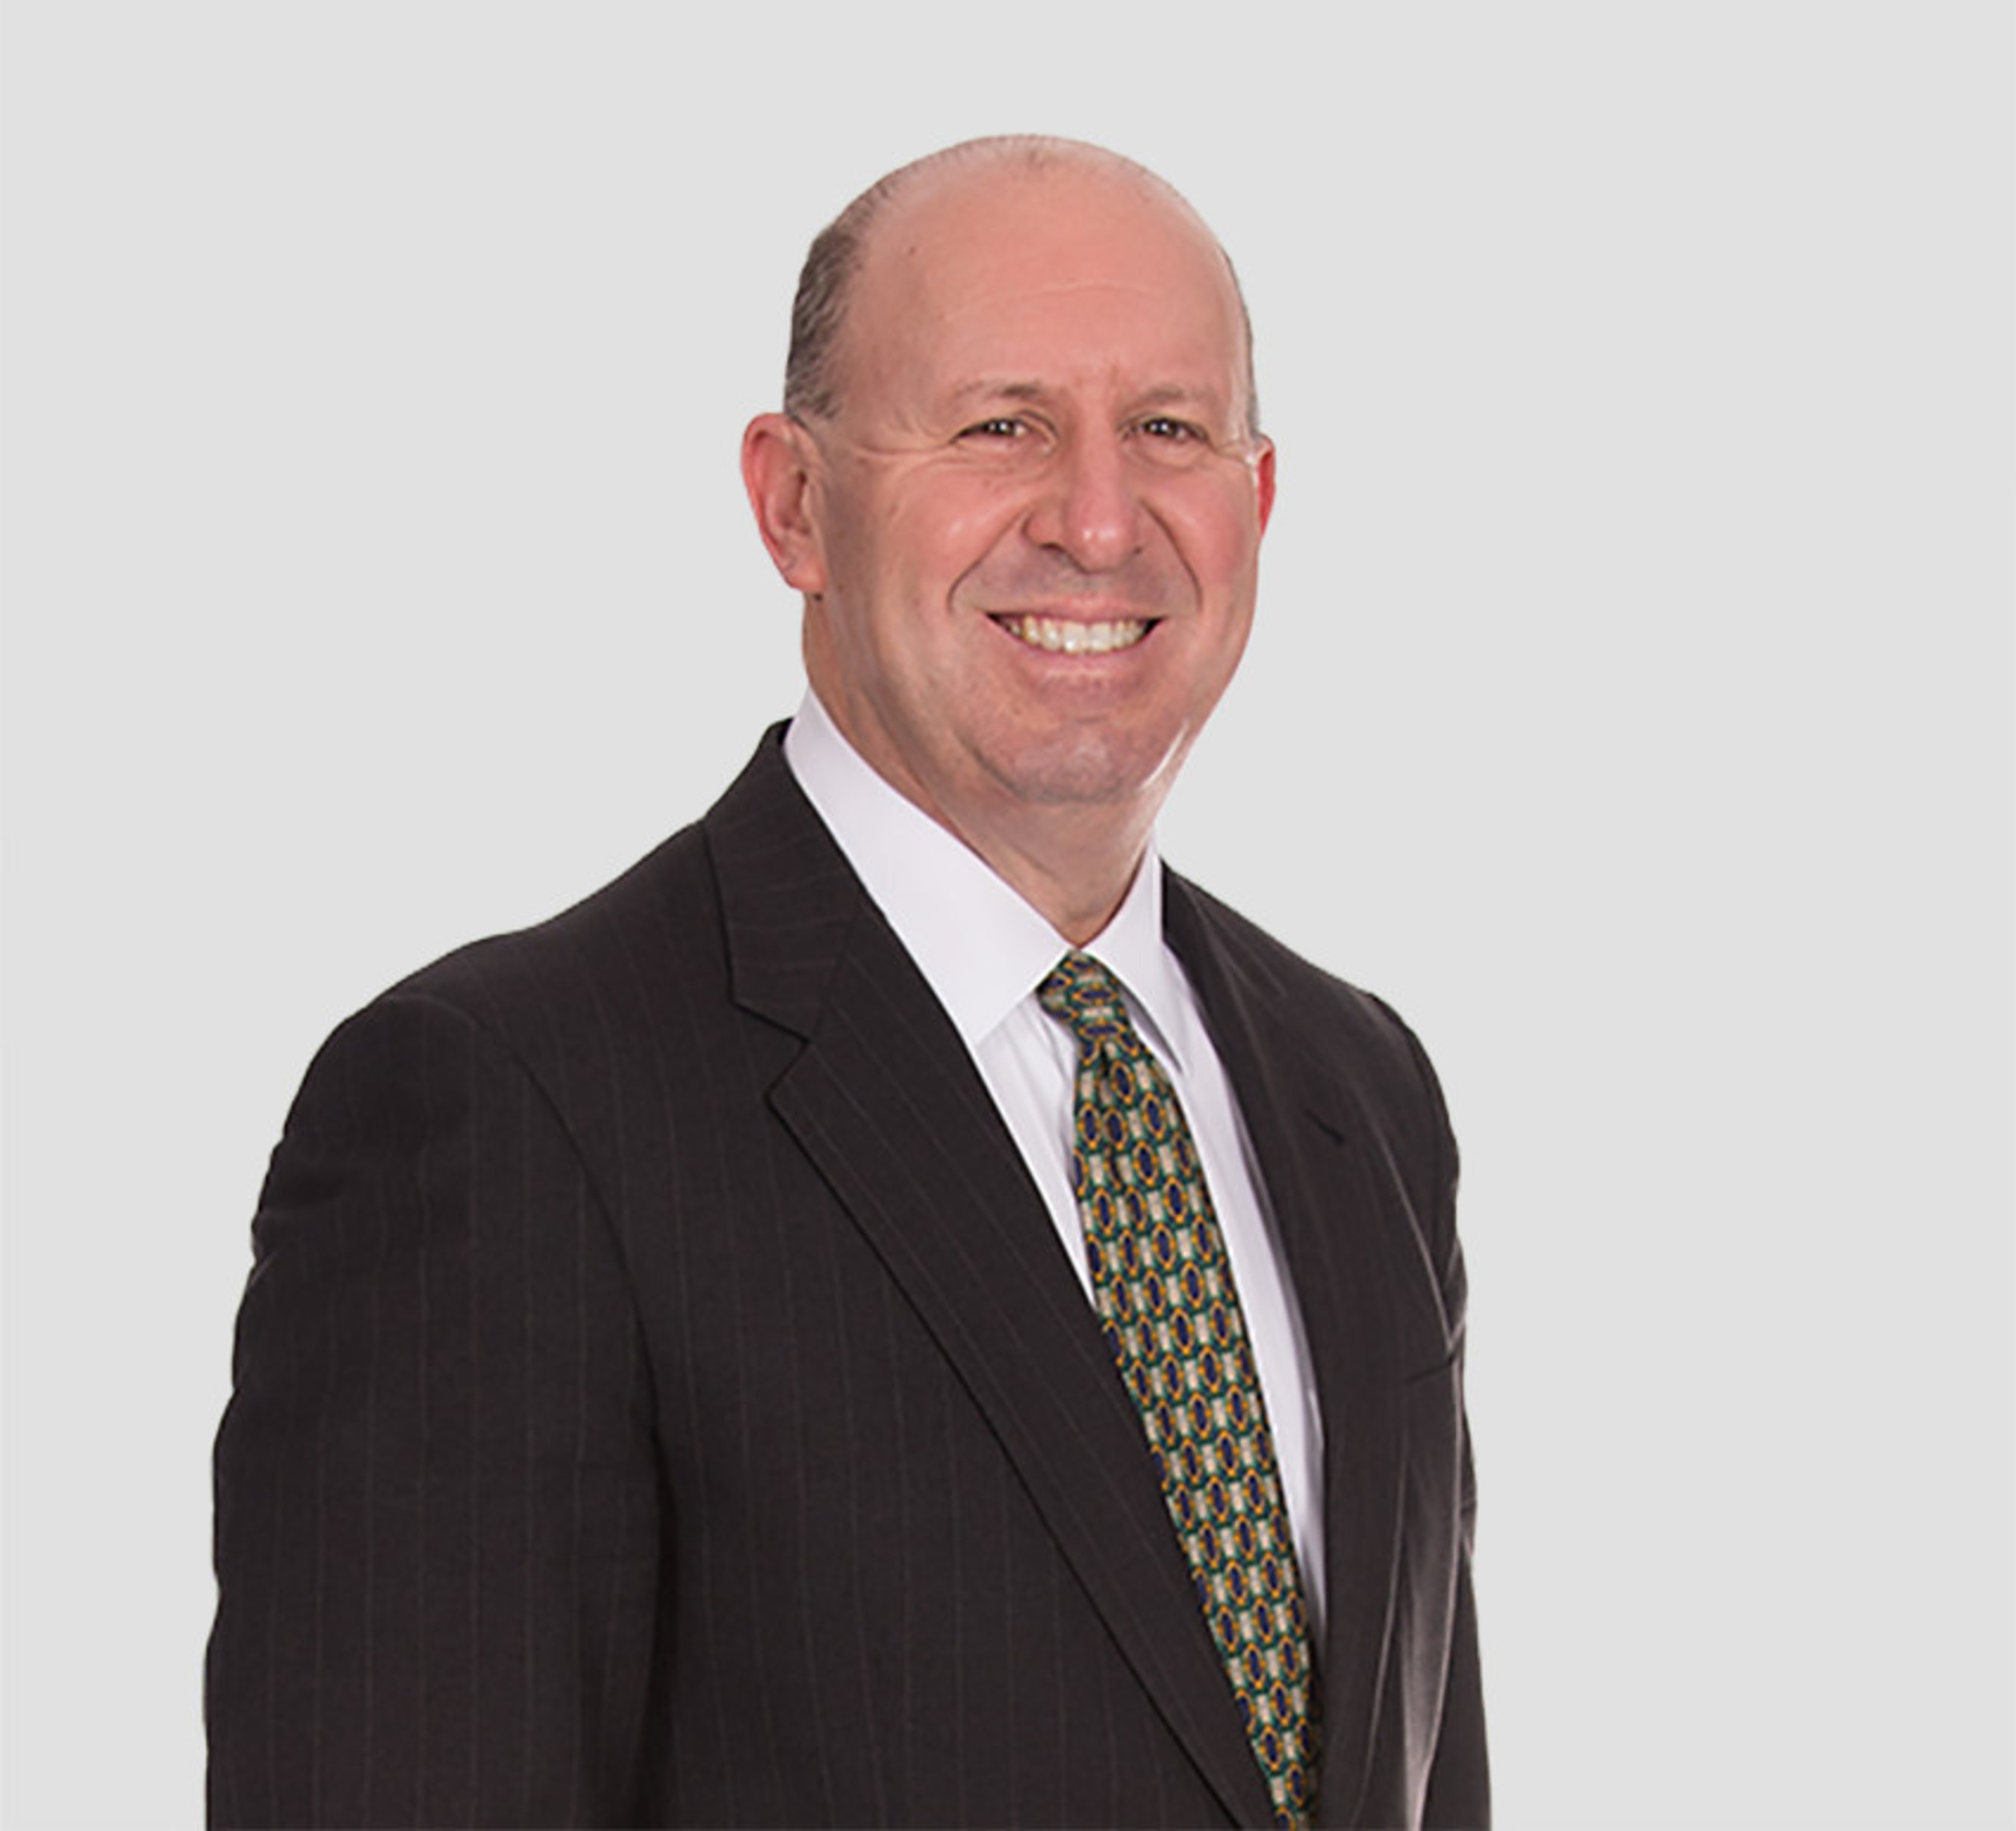 Deric Righter join Schechter Wealth, a boutique wealth advisory firm located in Birmingham, MI.